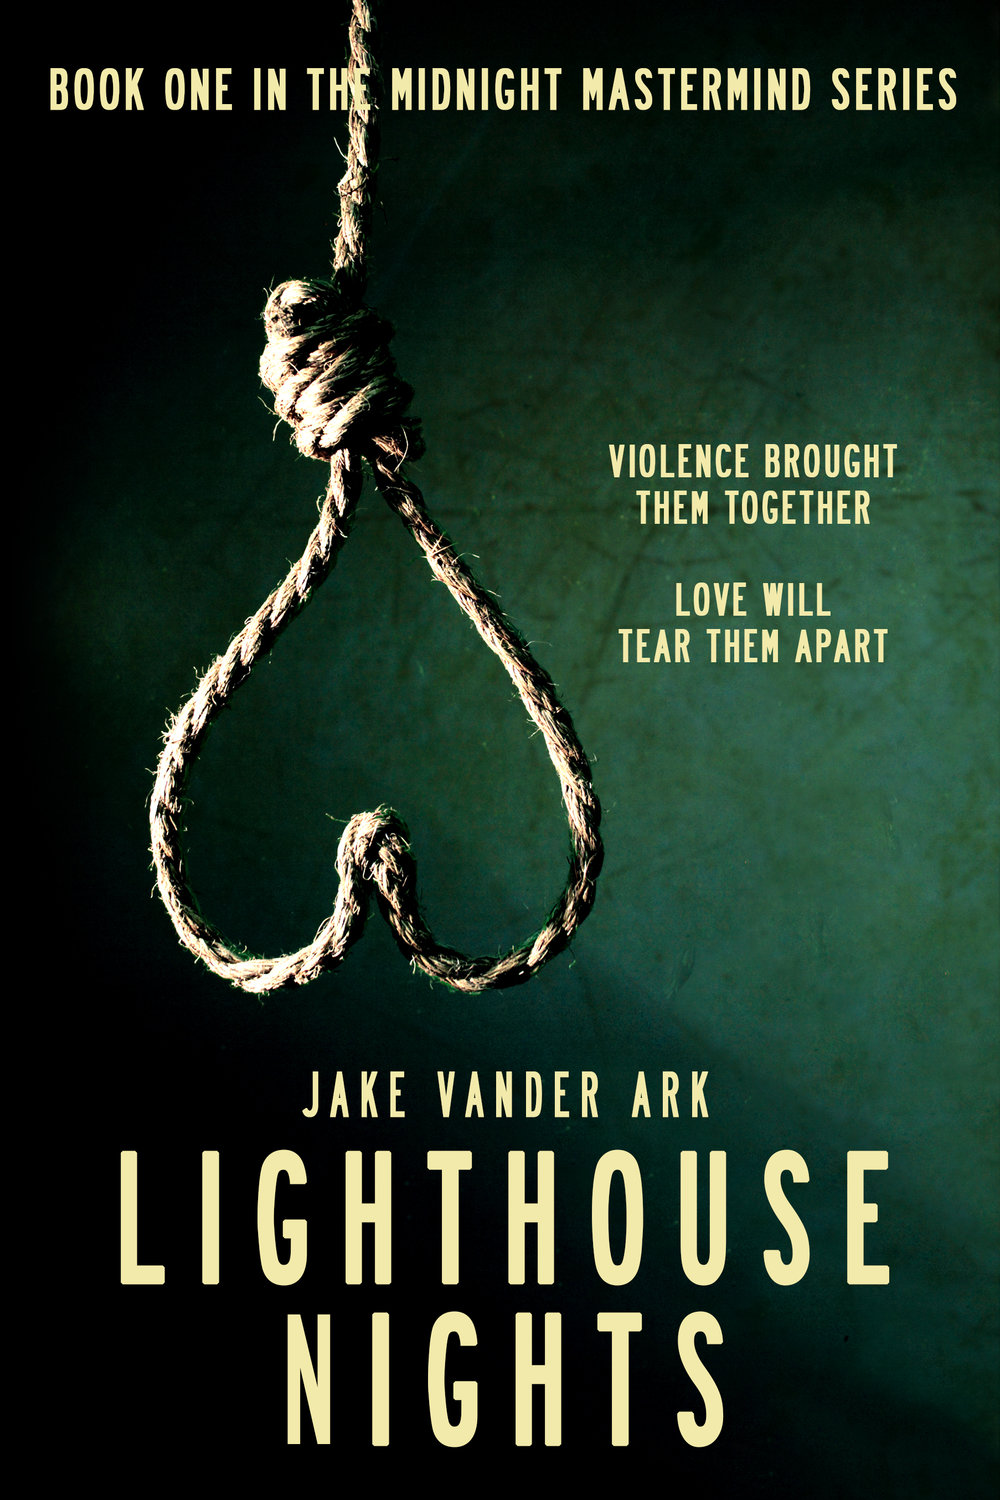 KINDLE or EPUB Lighthouse is a twisted little book about teens, but not necessarily FOR teens.